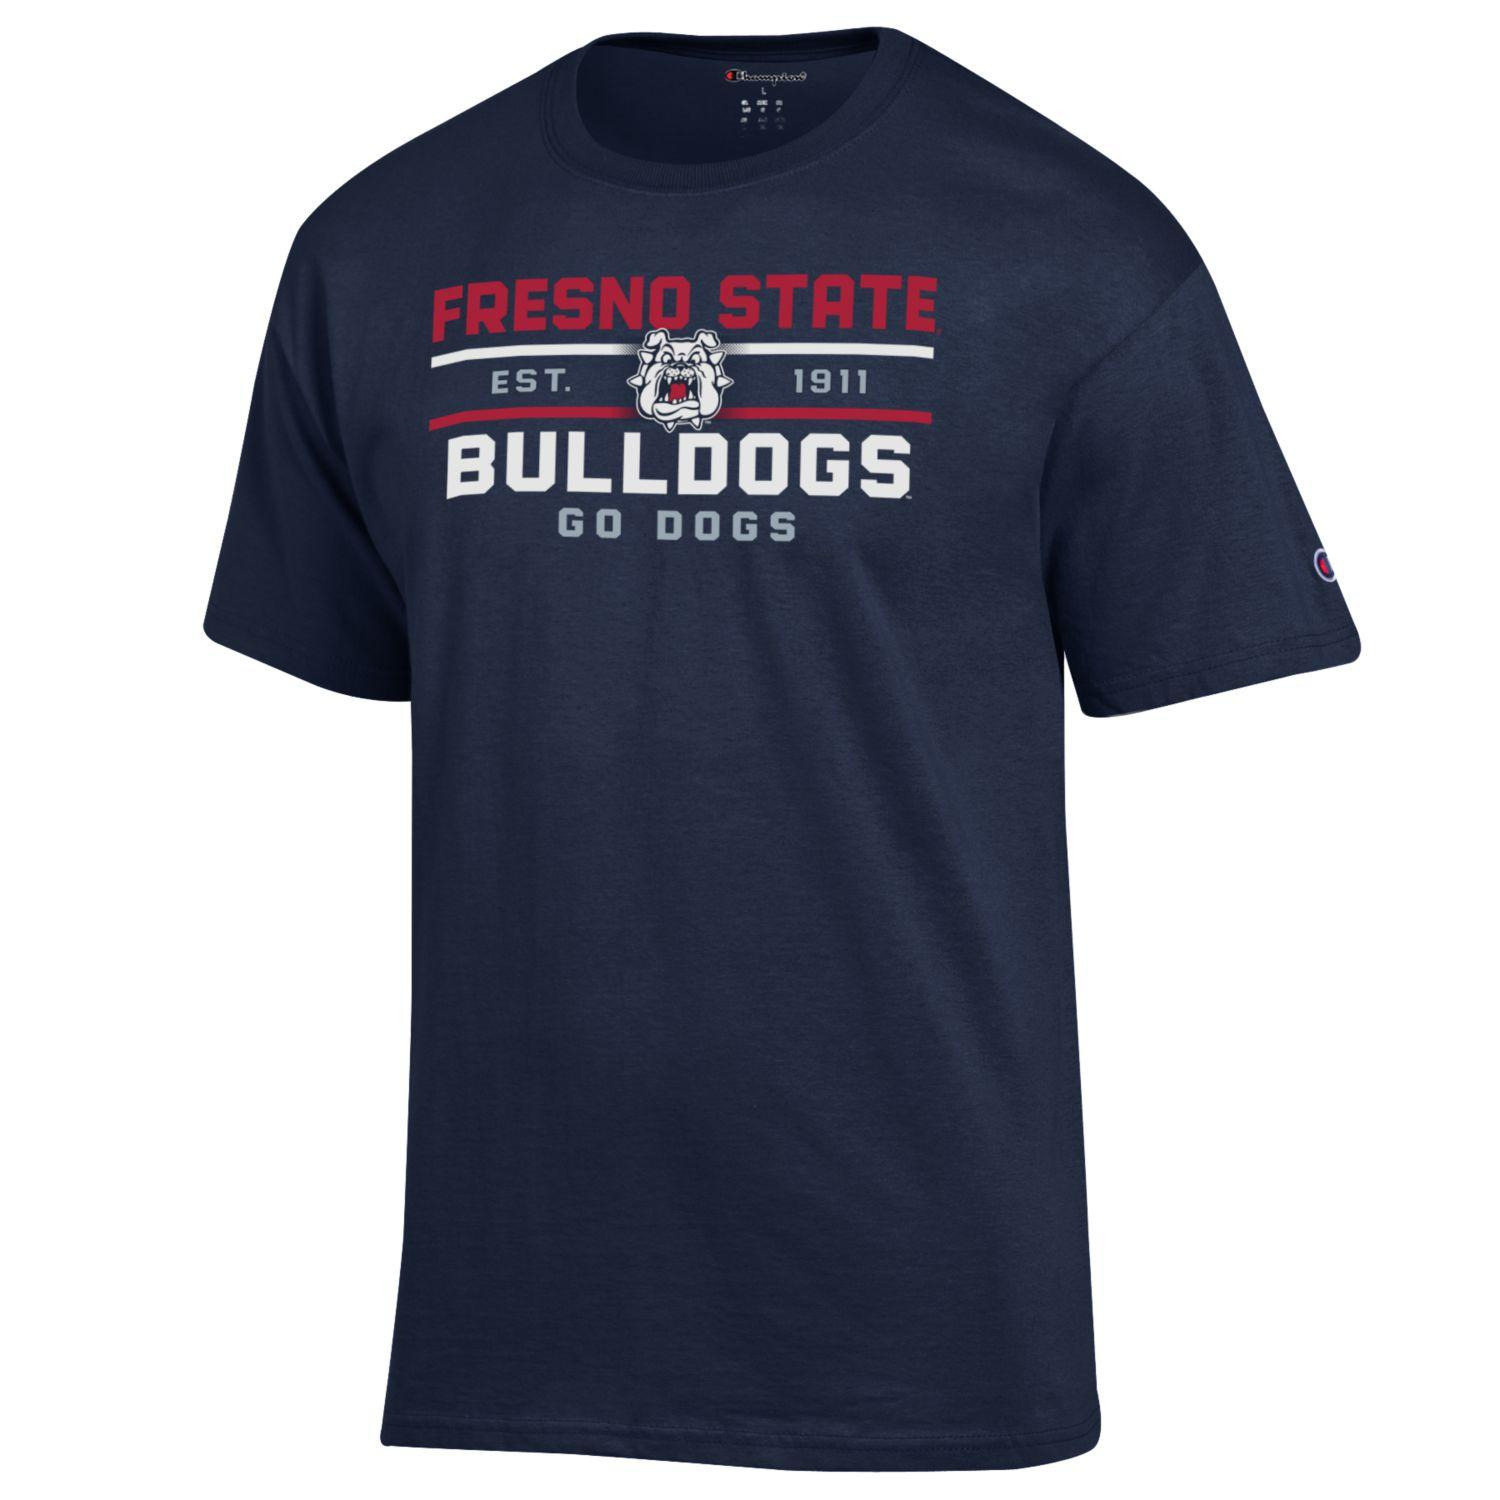 Champion The Bulldog Shop Jersey Crewneck T-shirt